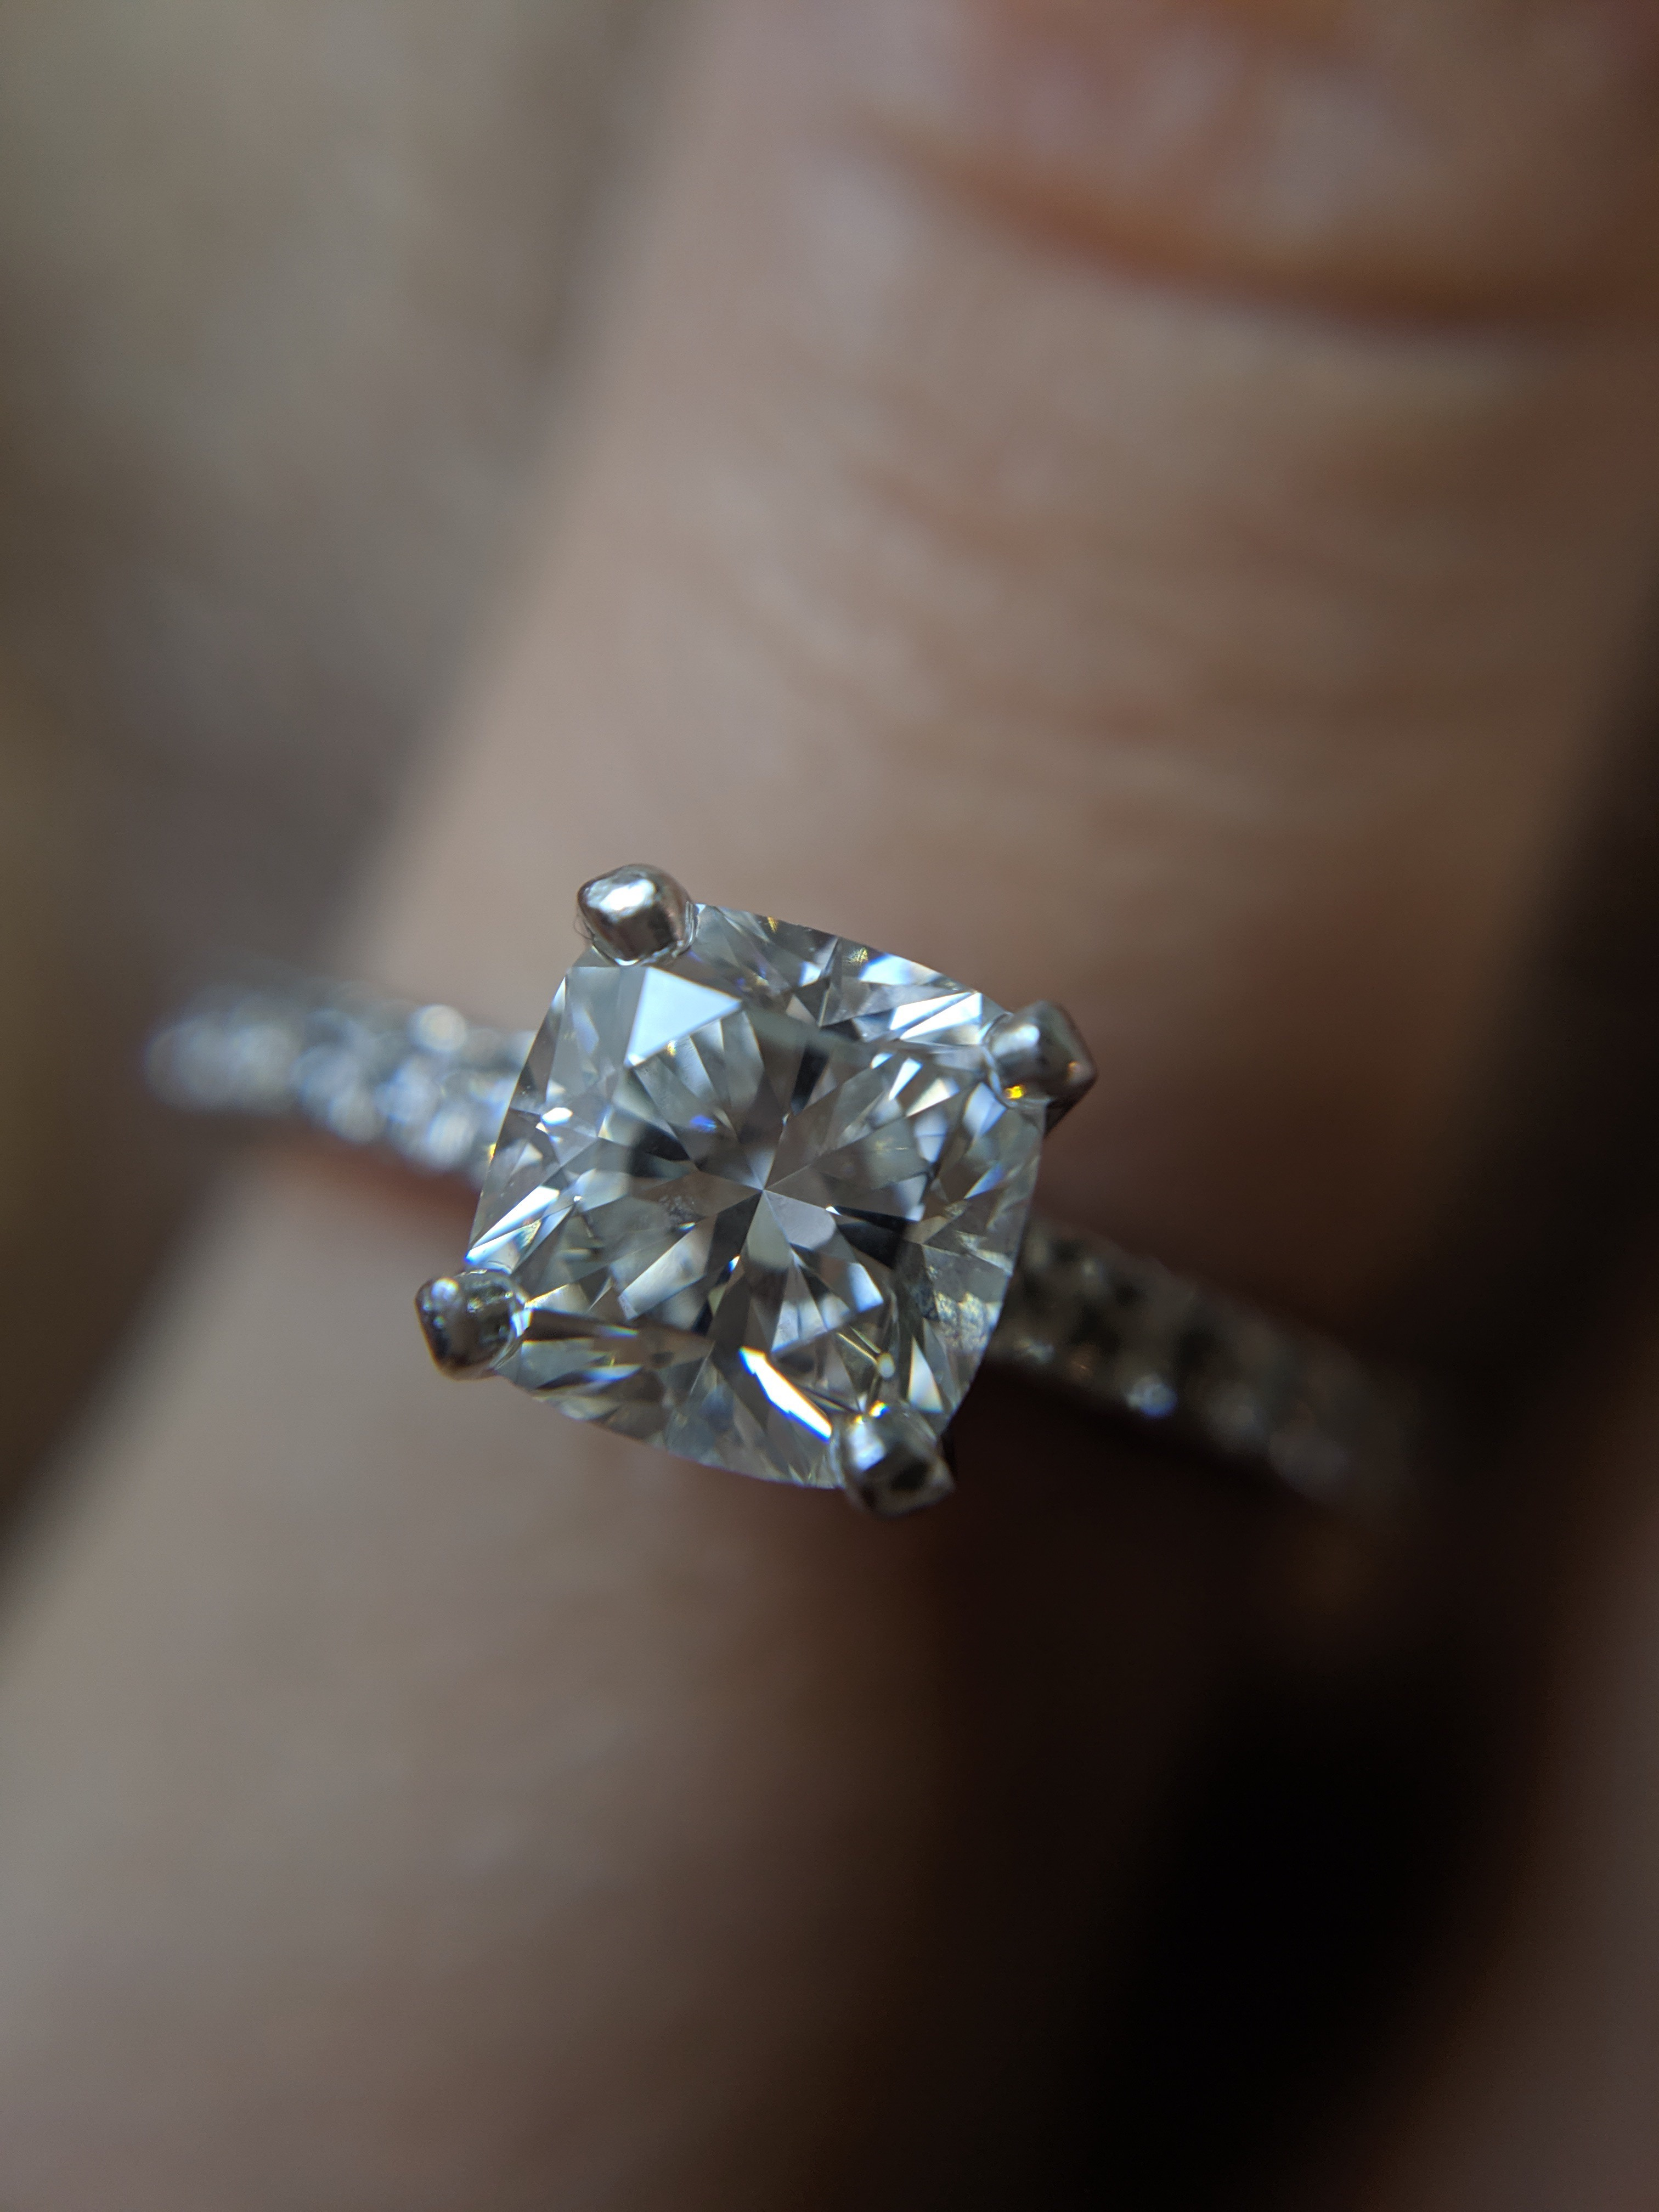 Tiffany Novo 0 86 Carat Cushion Cut Engagement Ring With A Pave Diamond Platinum Band